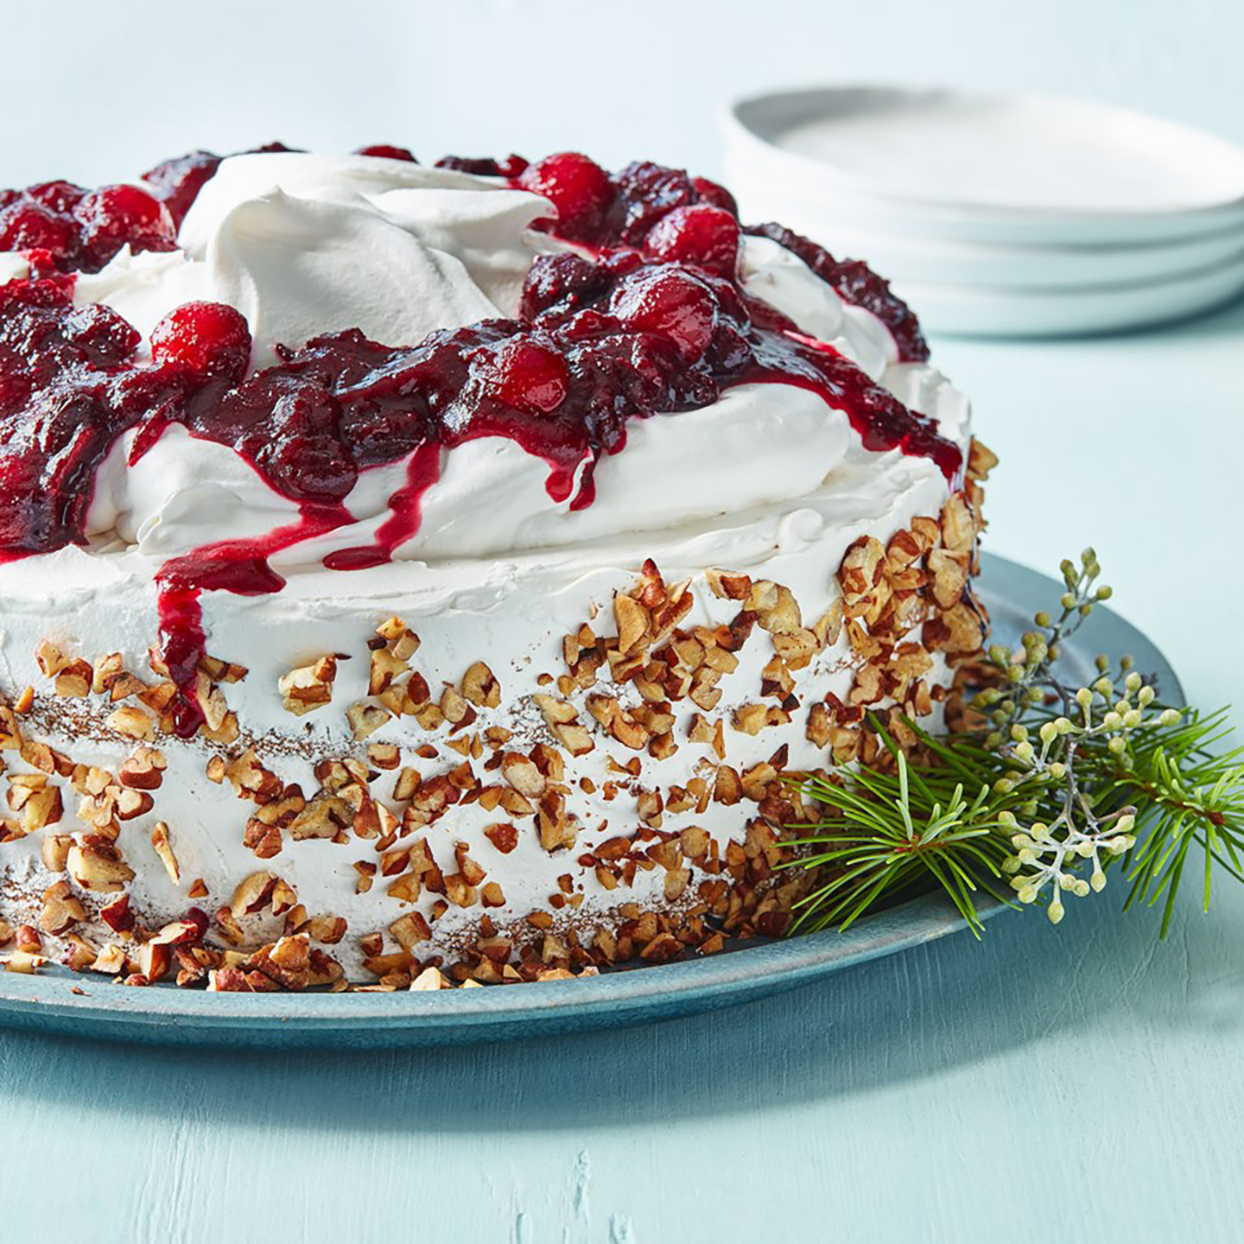 Apple Spice Cake with Cranberry-Mandarin Compote